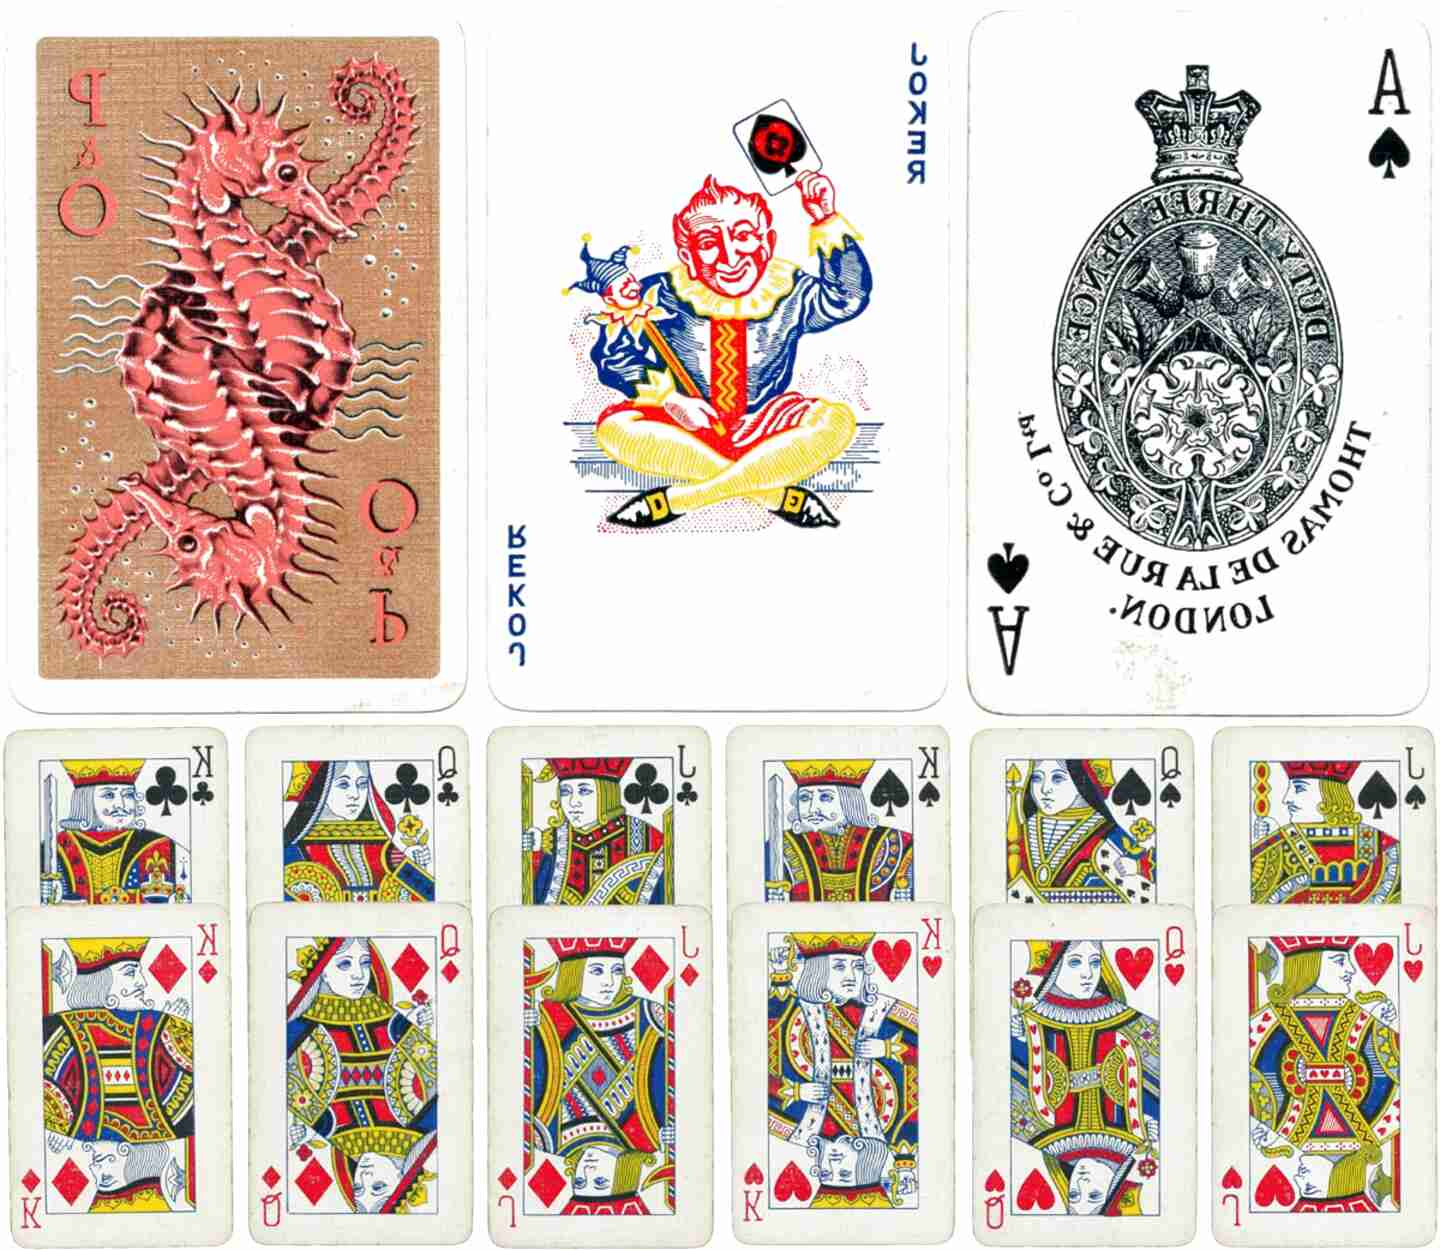 la rue playing cards for sale